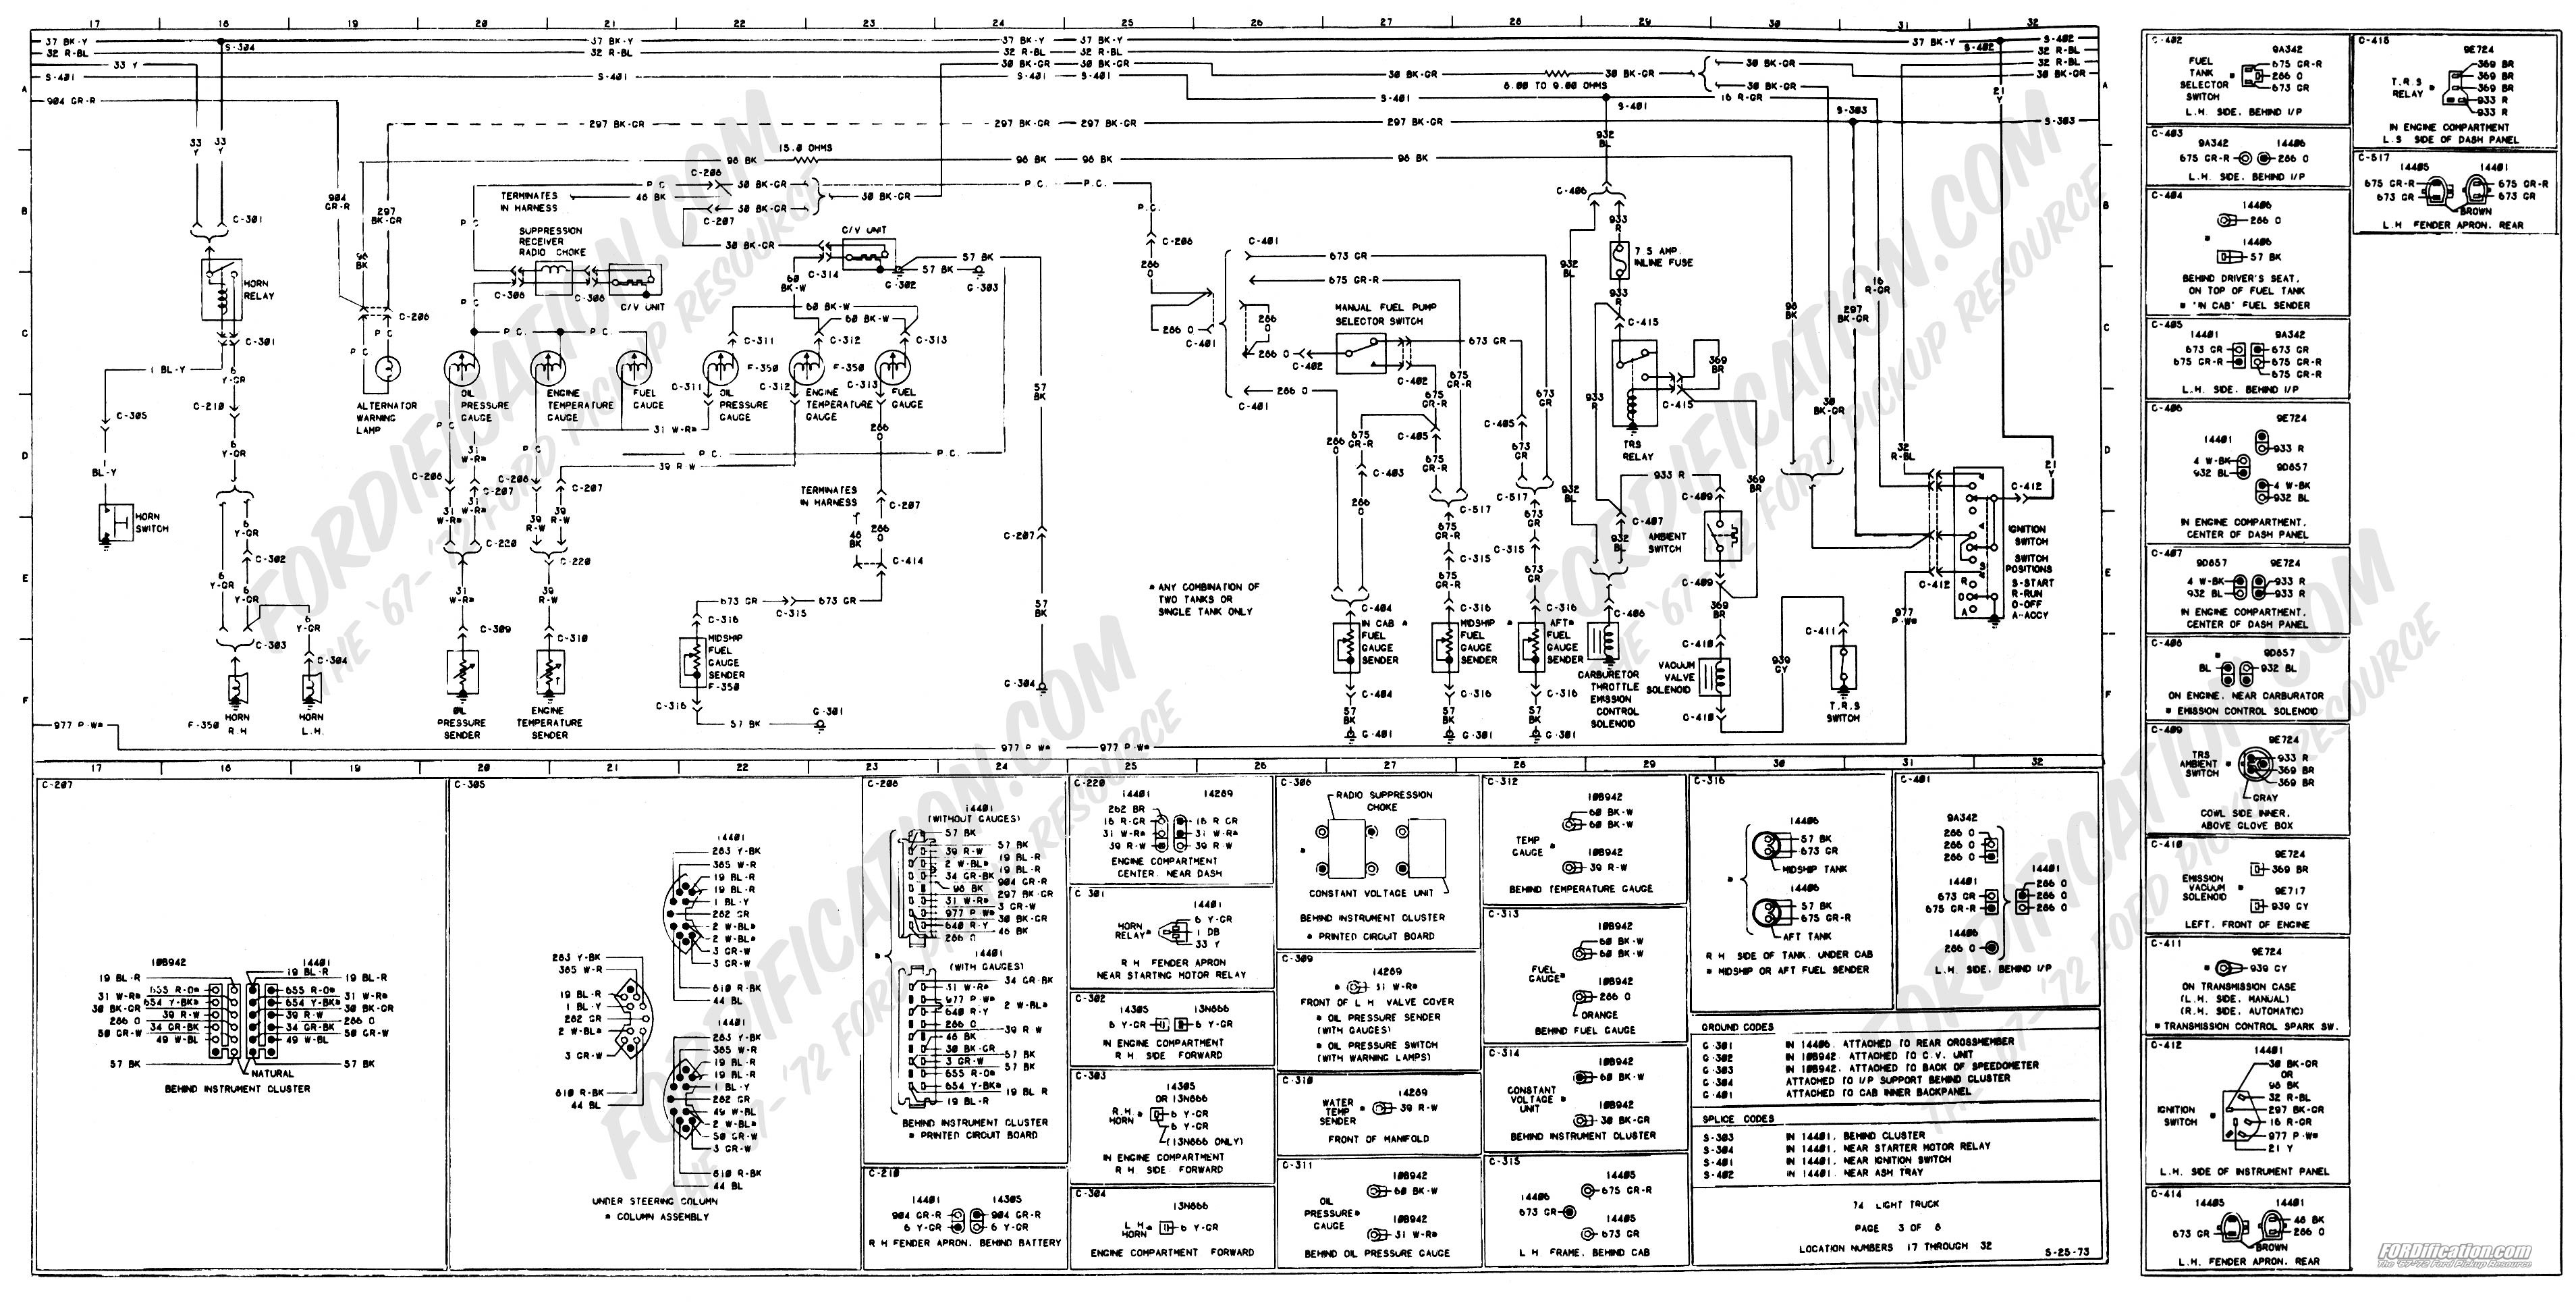 Ford 6 0 Engine Diagram 2 Wiring Schematic for A C Heat A 1984 F250 Diesel  ford